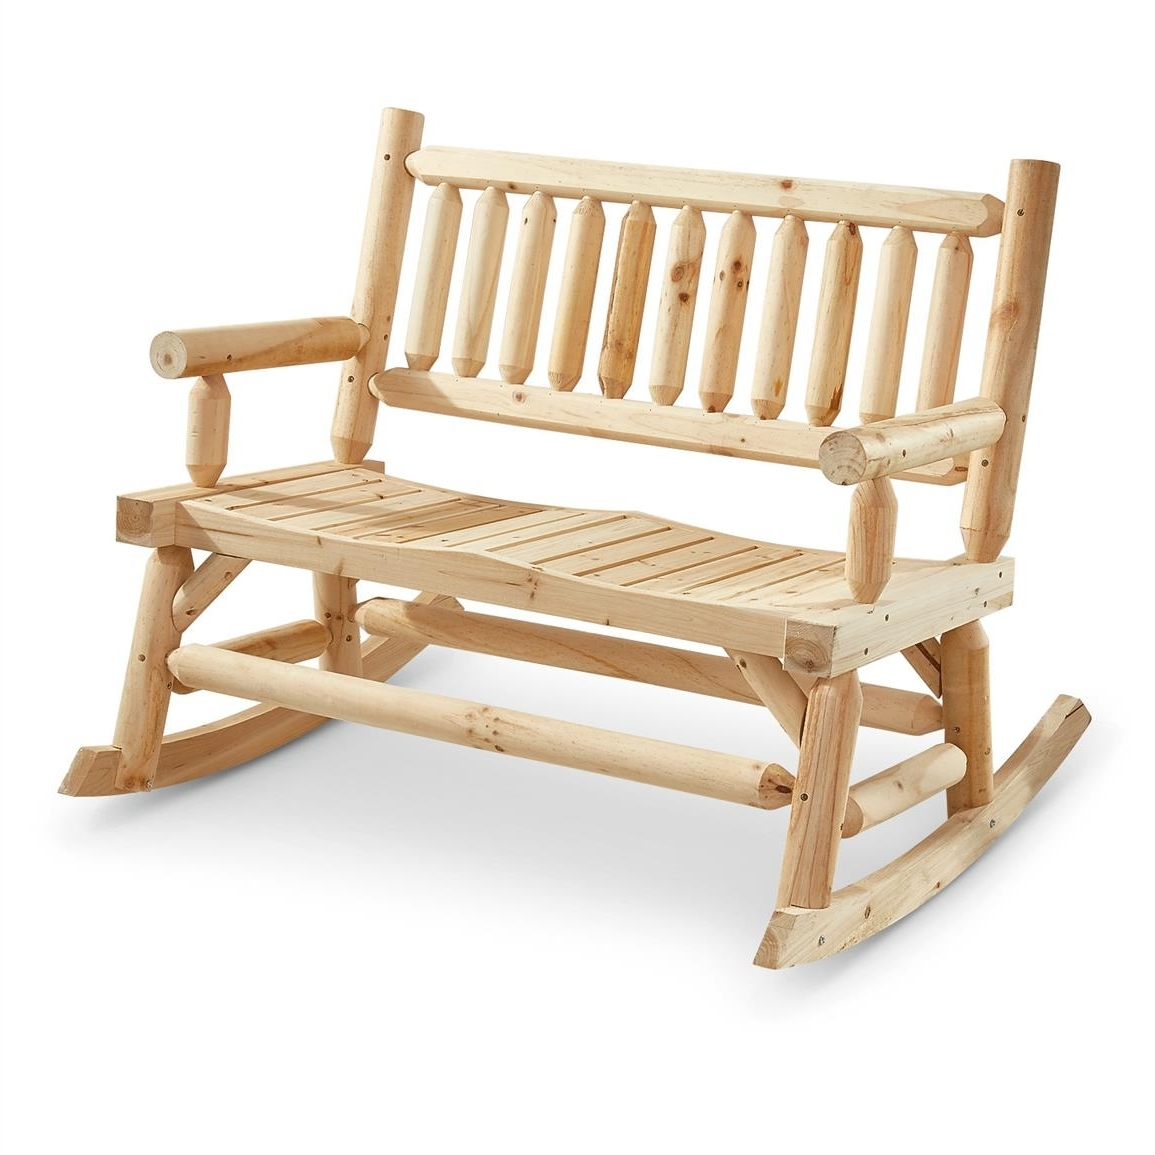 Castlecreek 2 Seat Wooden Rocking Bench – 657798, Patio Furniture At Inside Most Up To Date Patio Furniture Rocking Benches (View 9 of 15)